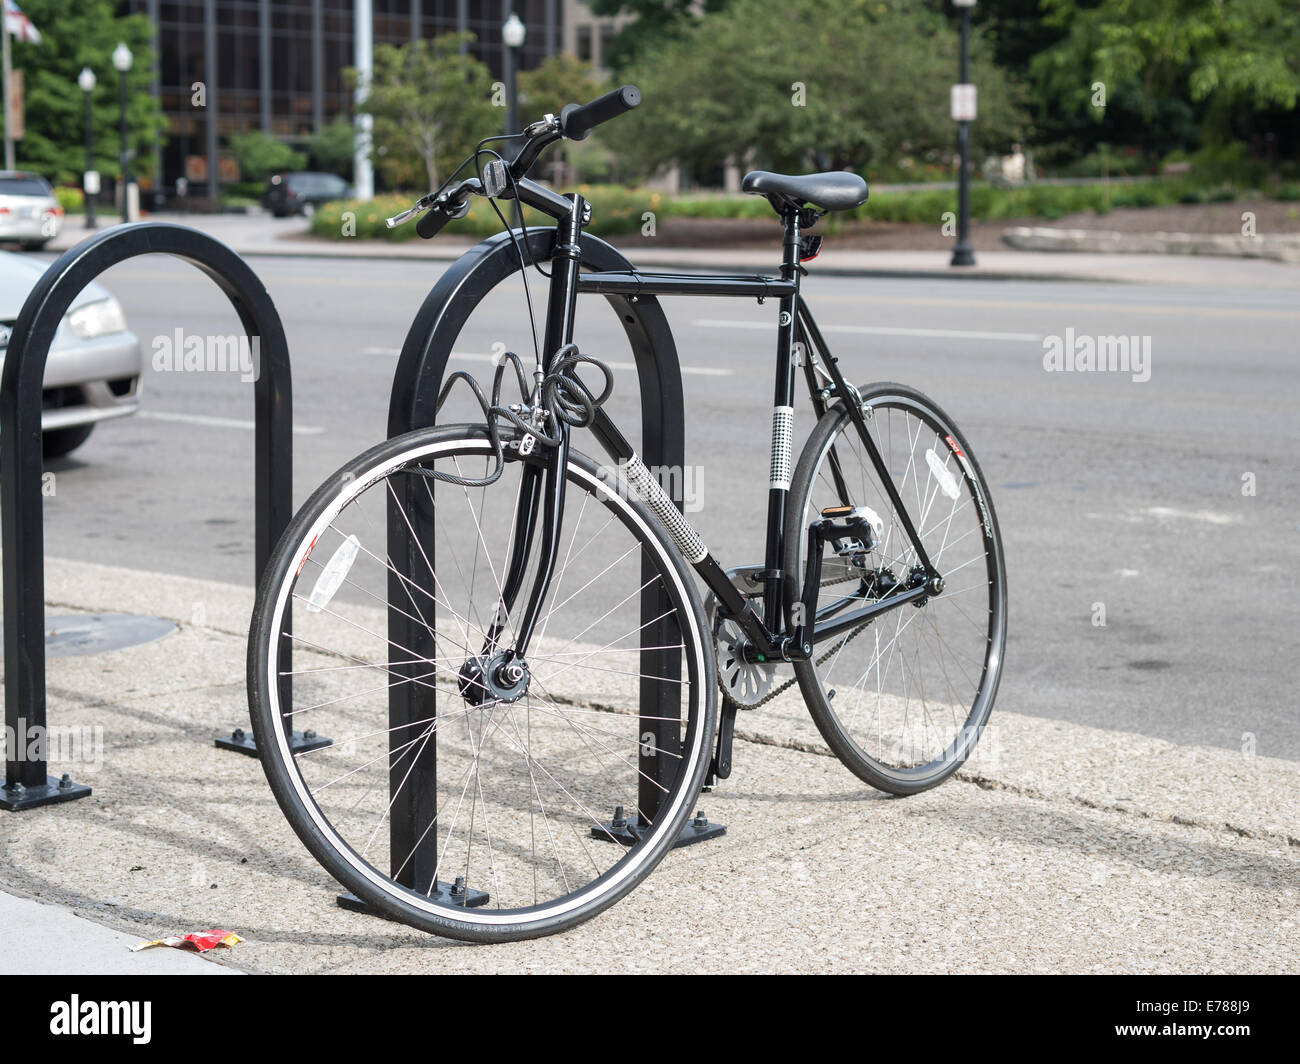 A bicycle parked at a bike rack next to the street in Columbus Ohio - Stock Image